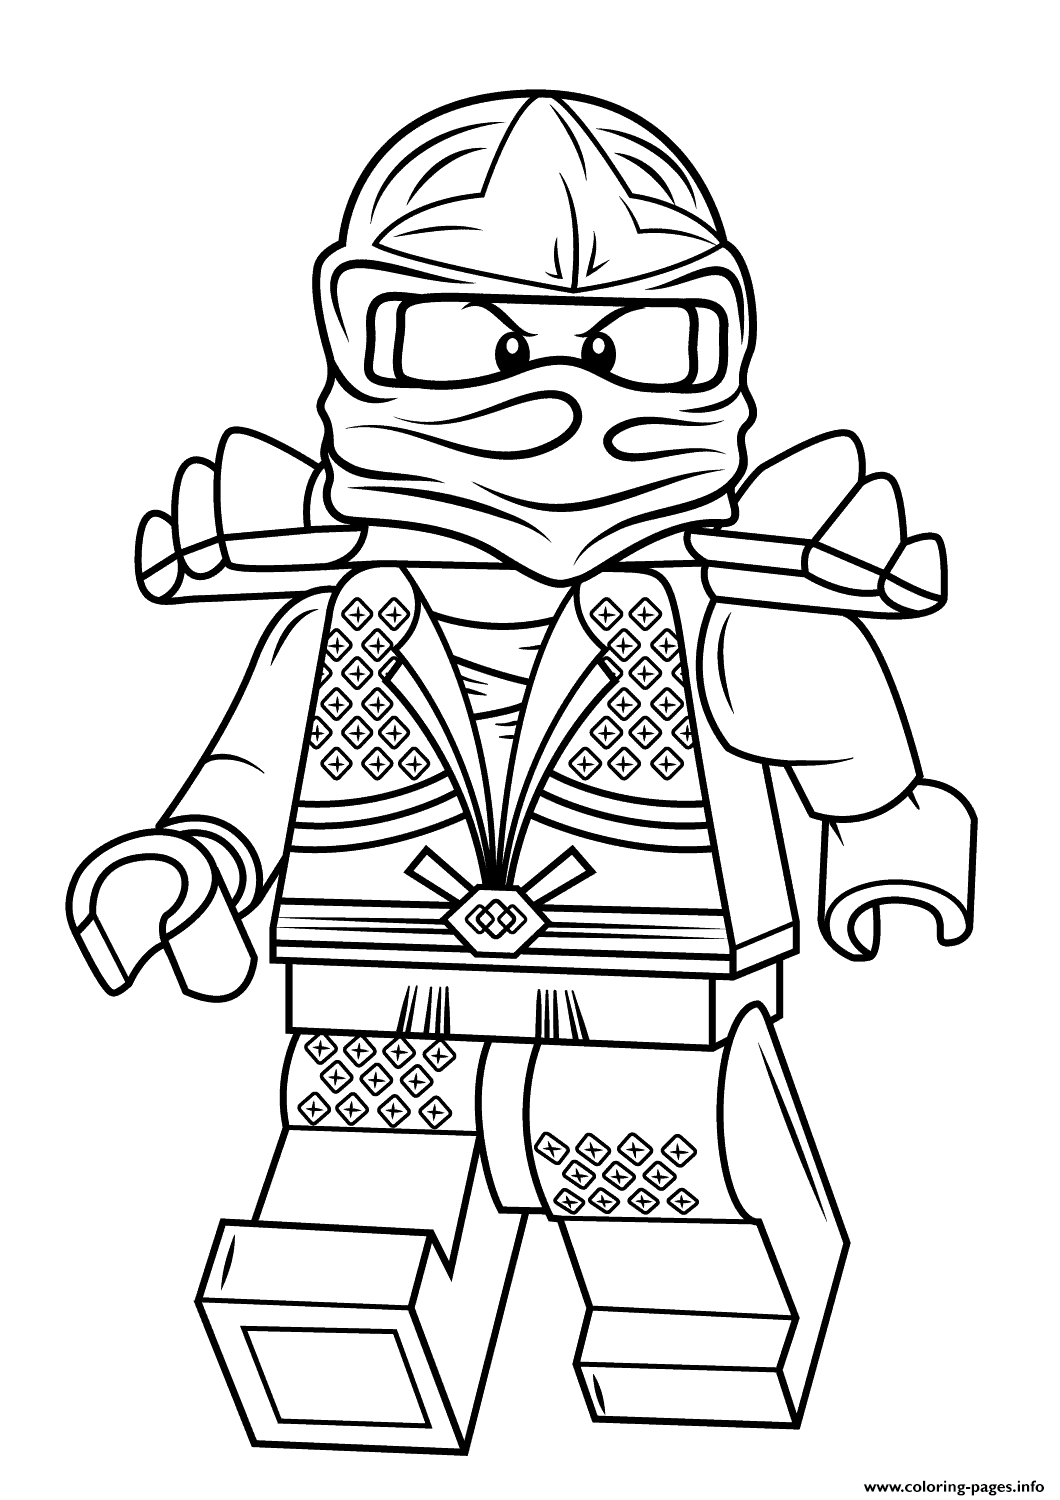 And coloring pages lego ninjago green ninja morro coloring for Ninjago green ninja coloring pages